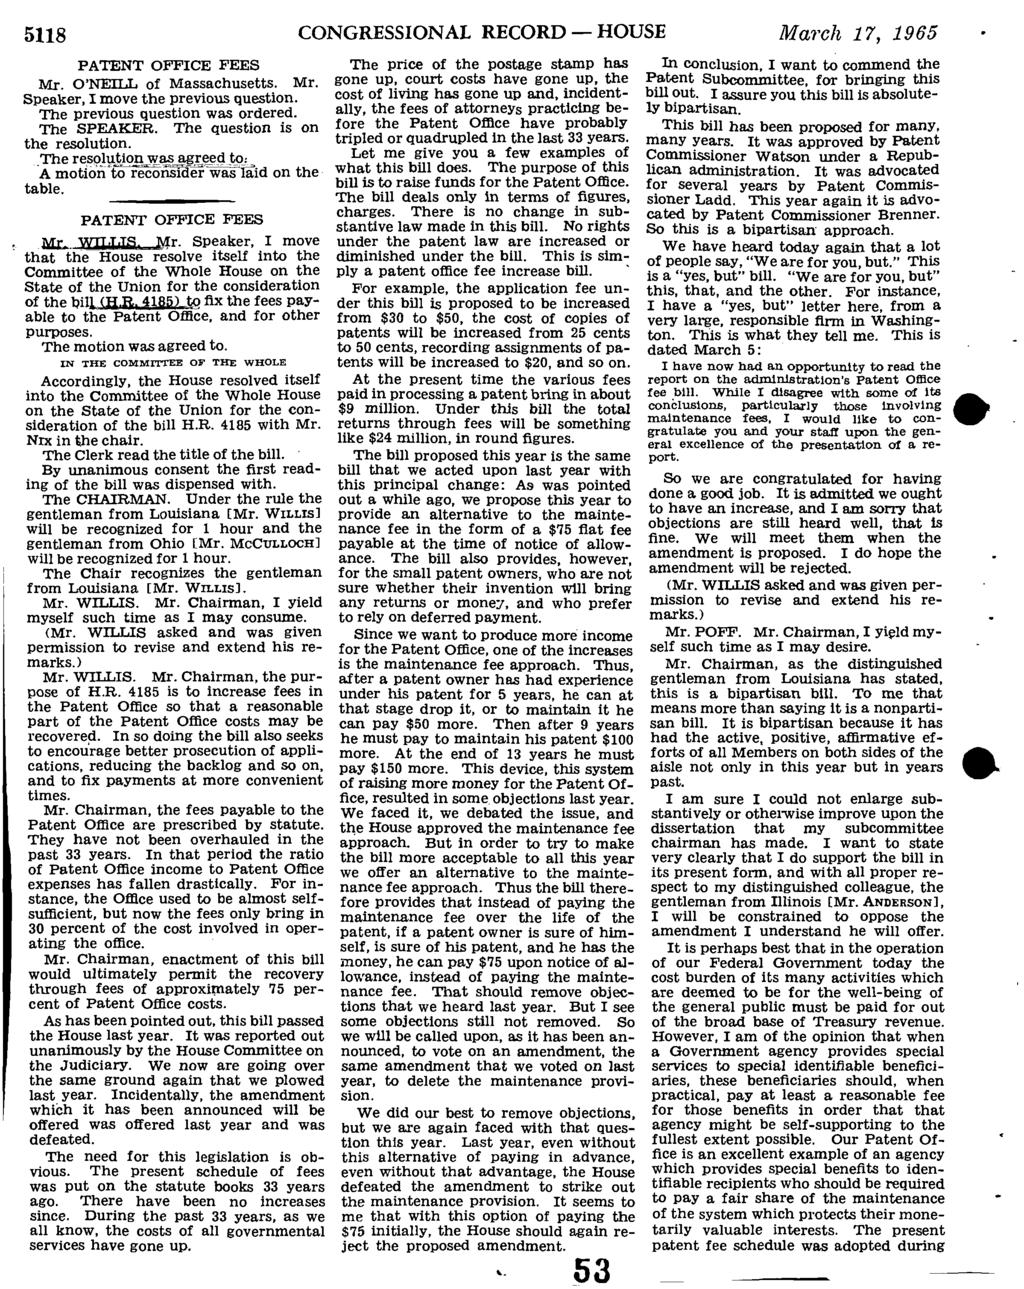 5118 CONGRESSIONAL RECORD HOUSE March 17, 1965 PATENT OFFICE FEES Mr. O'NEILL of Massachusetts. Mr. Speaker, I move the previous question. The previous question was ordered. The SPEAKER.